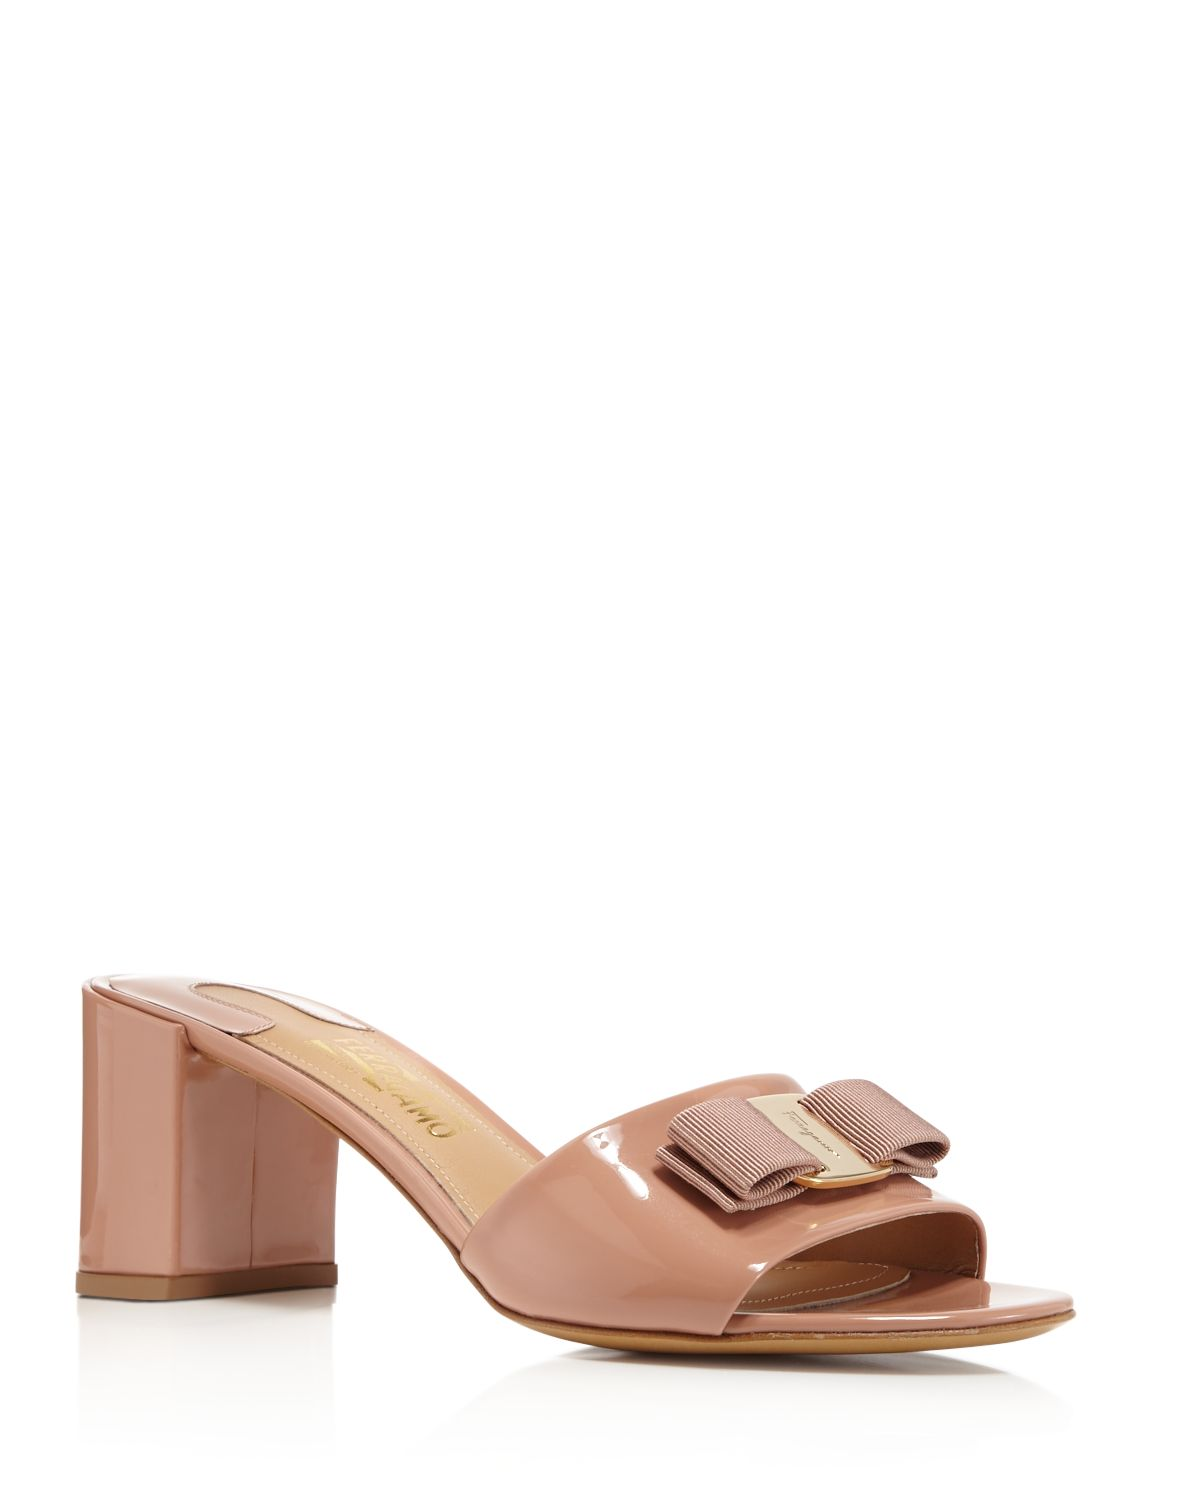 Salvatore Ferragamo Patent Leather Slingback Sandals